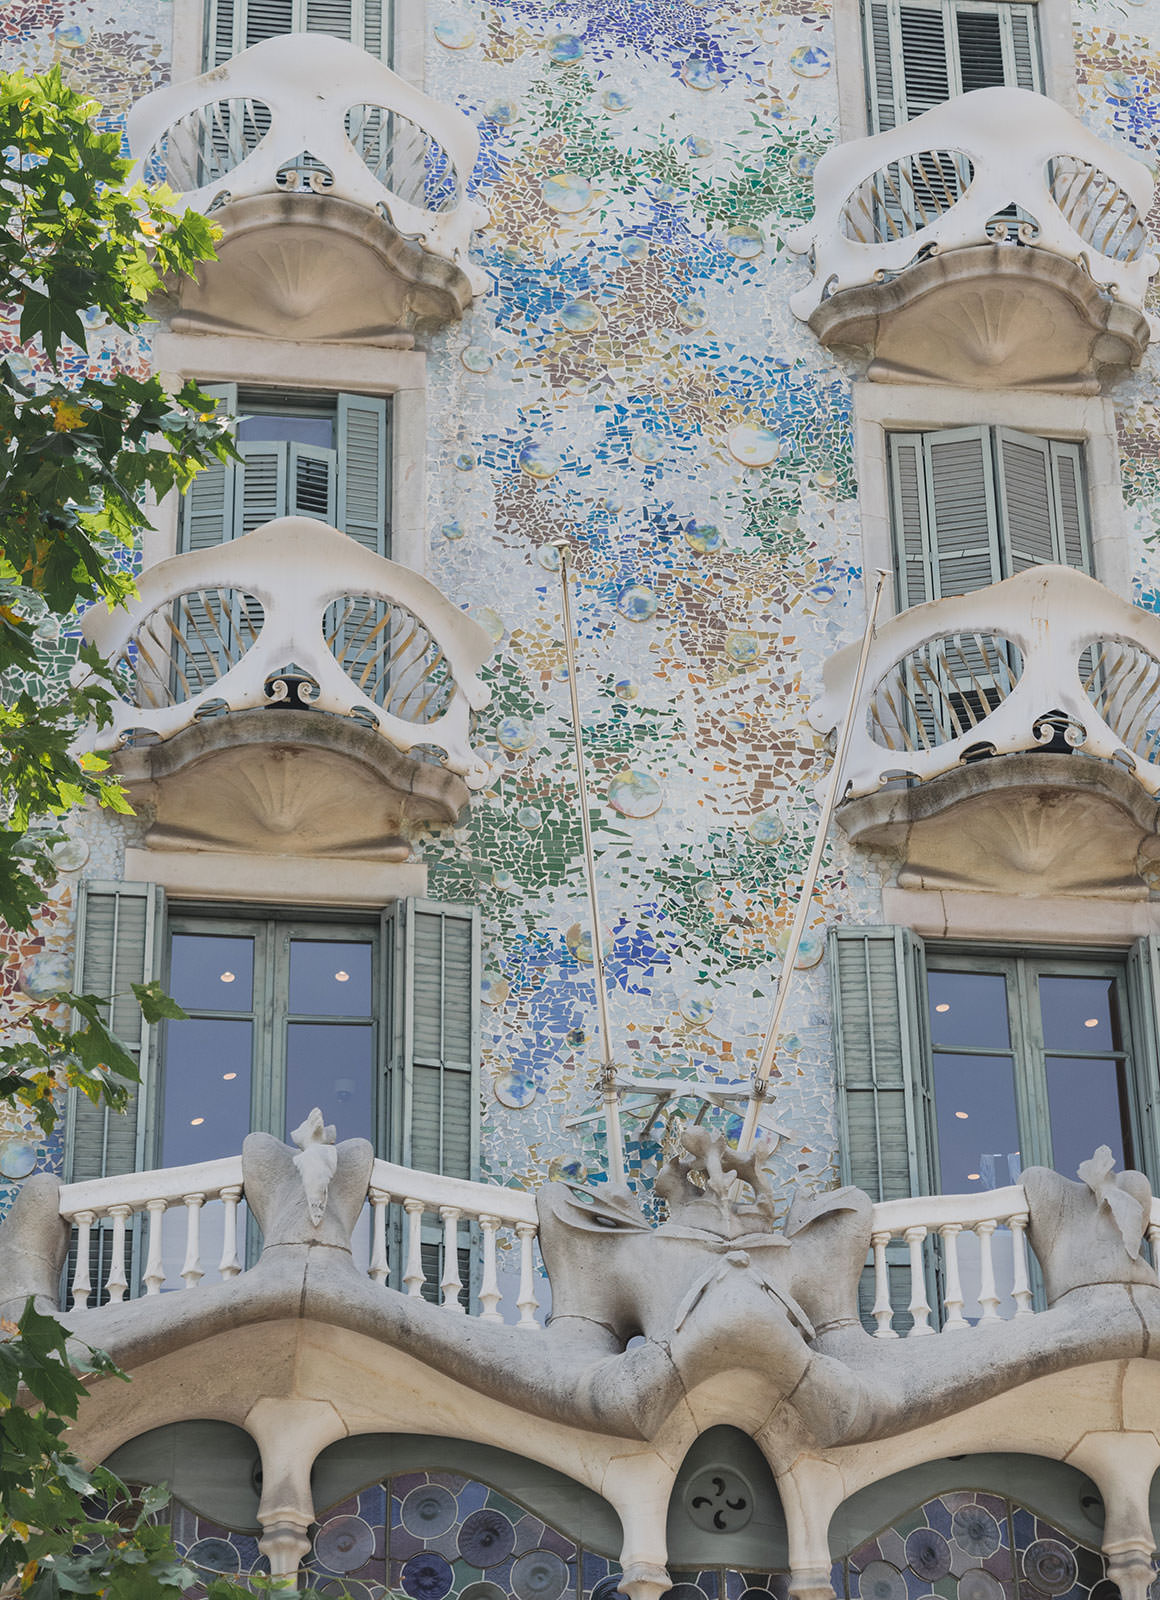 Things to do in Barcelona - Casa Batlo